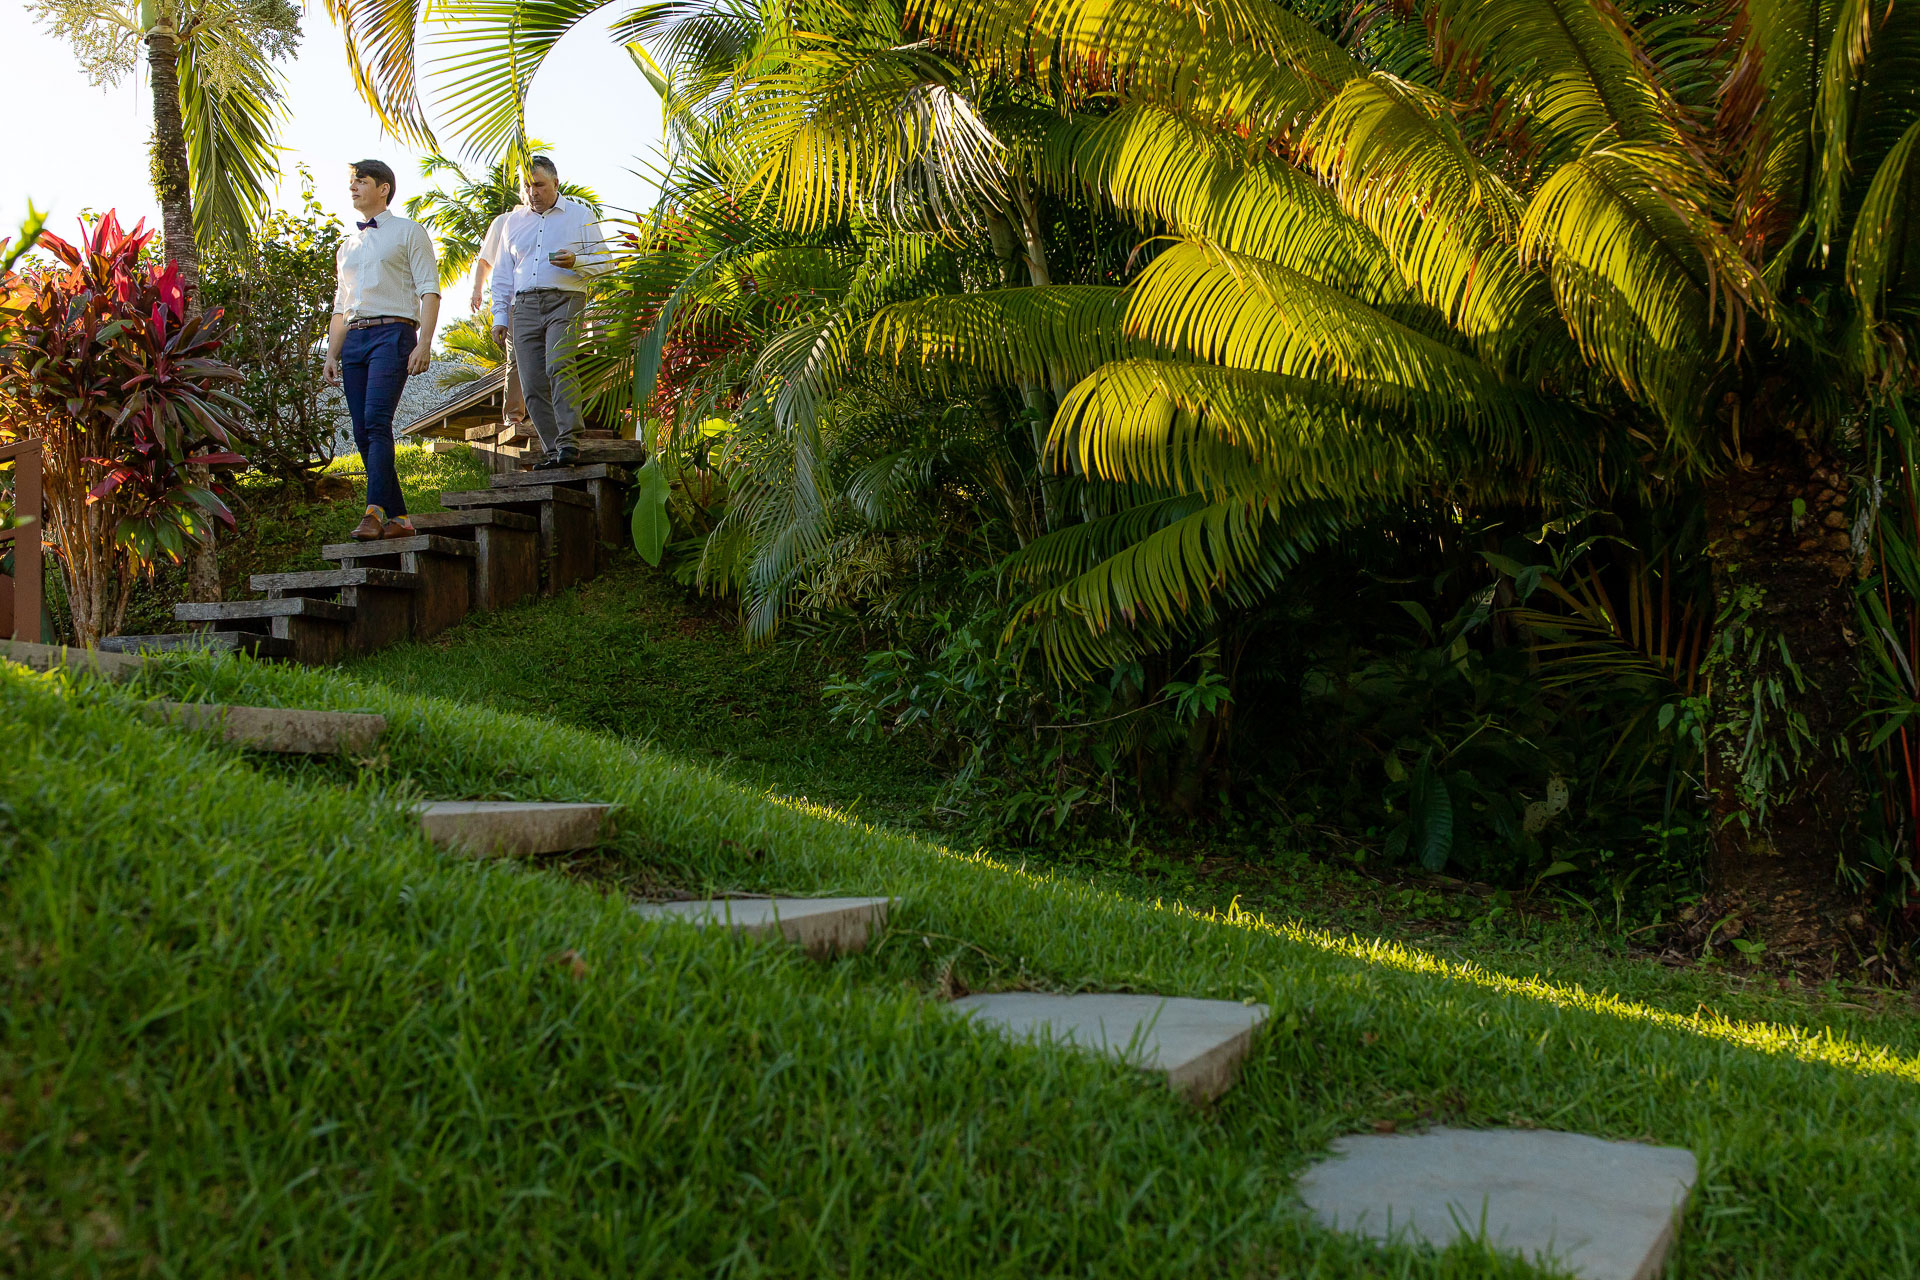 Costa Rica Wedding Photographer | The groom walks down the steps past the local flora and fauna at the outside ceremony